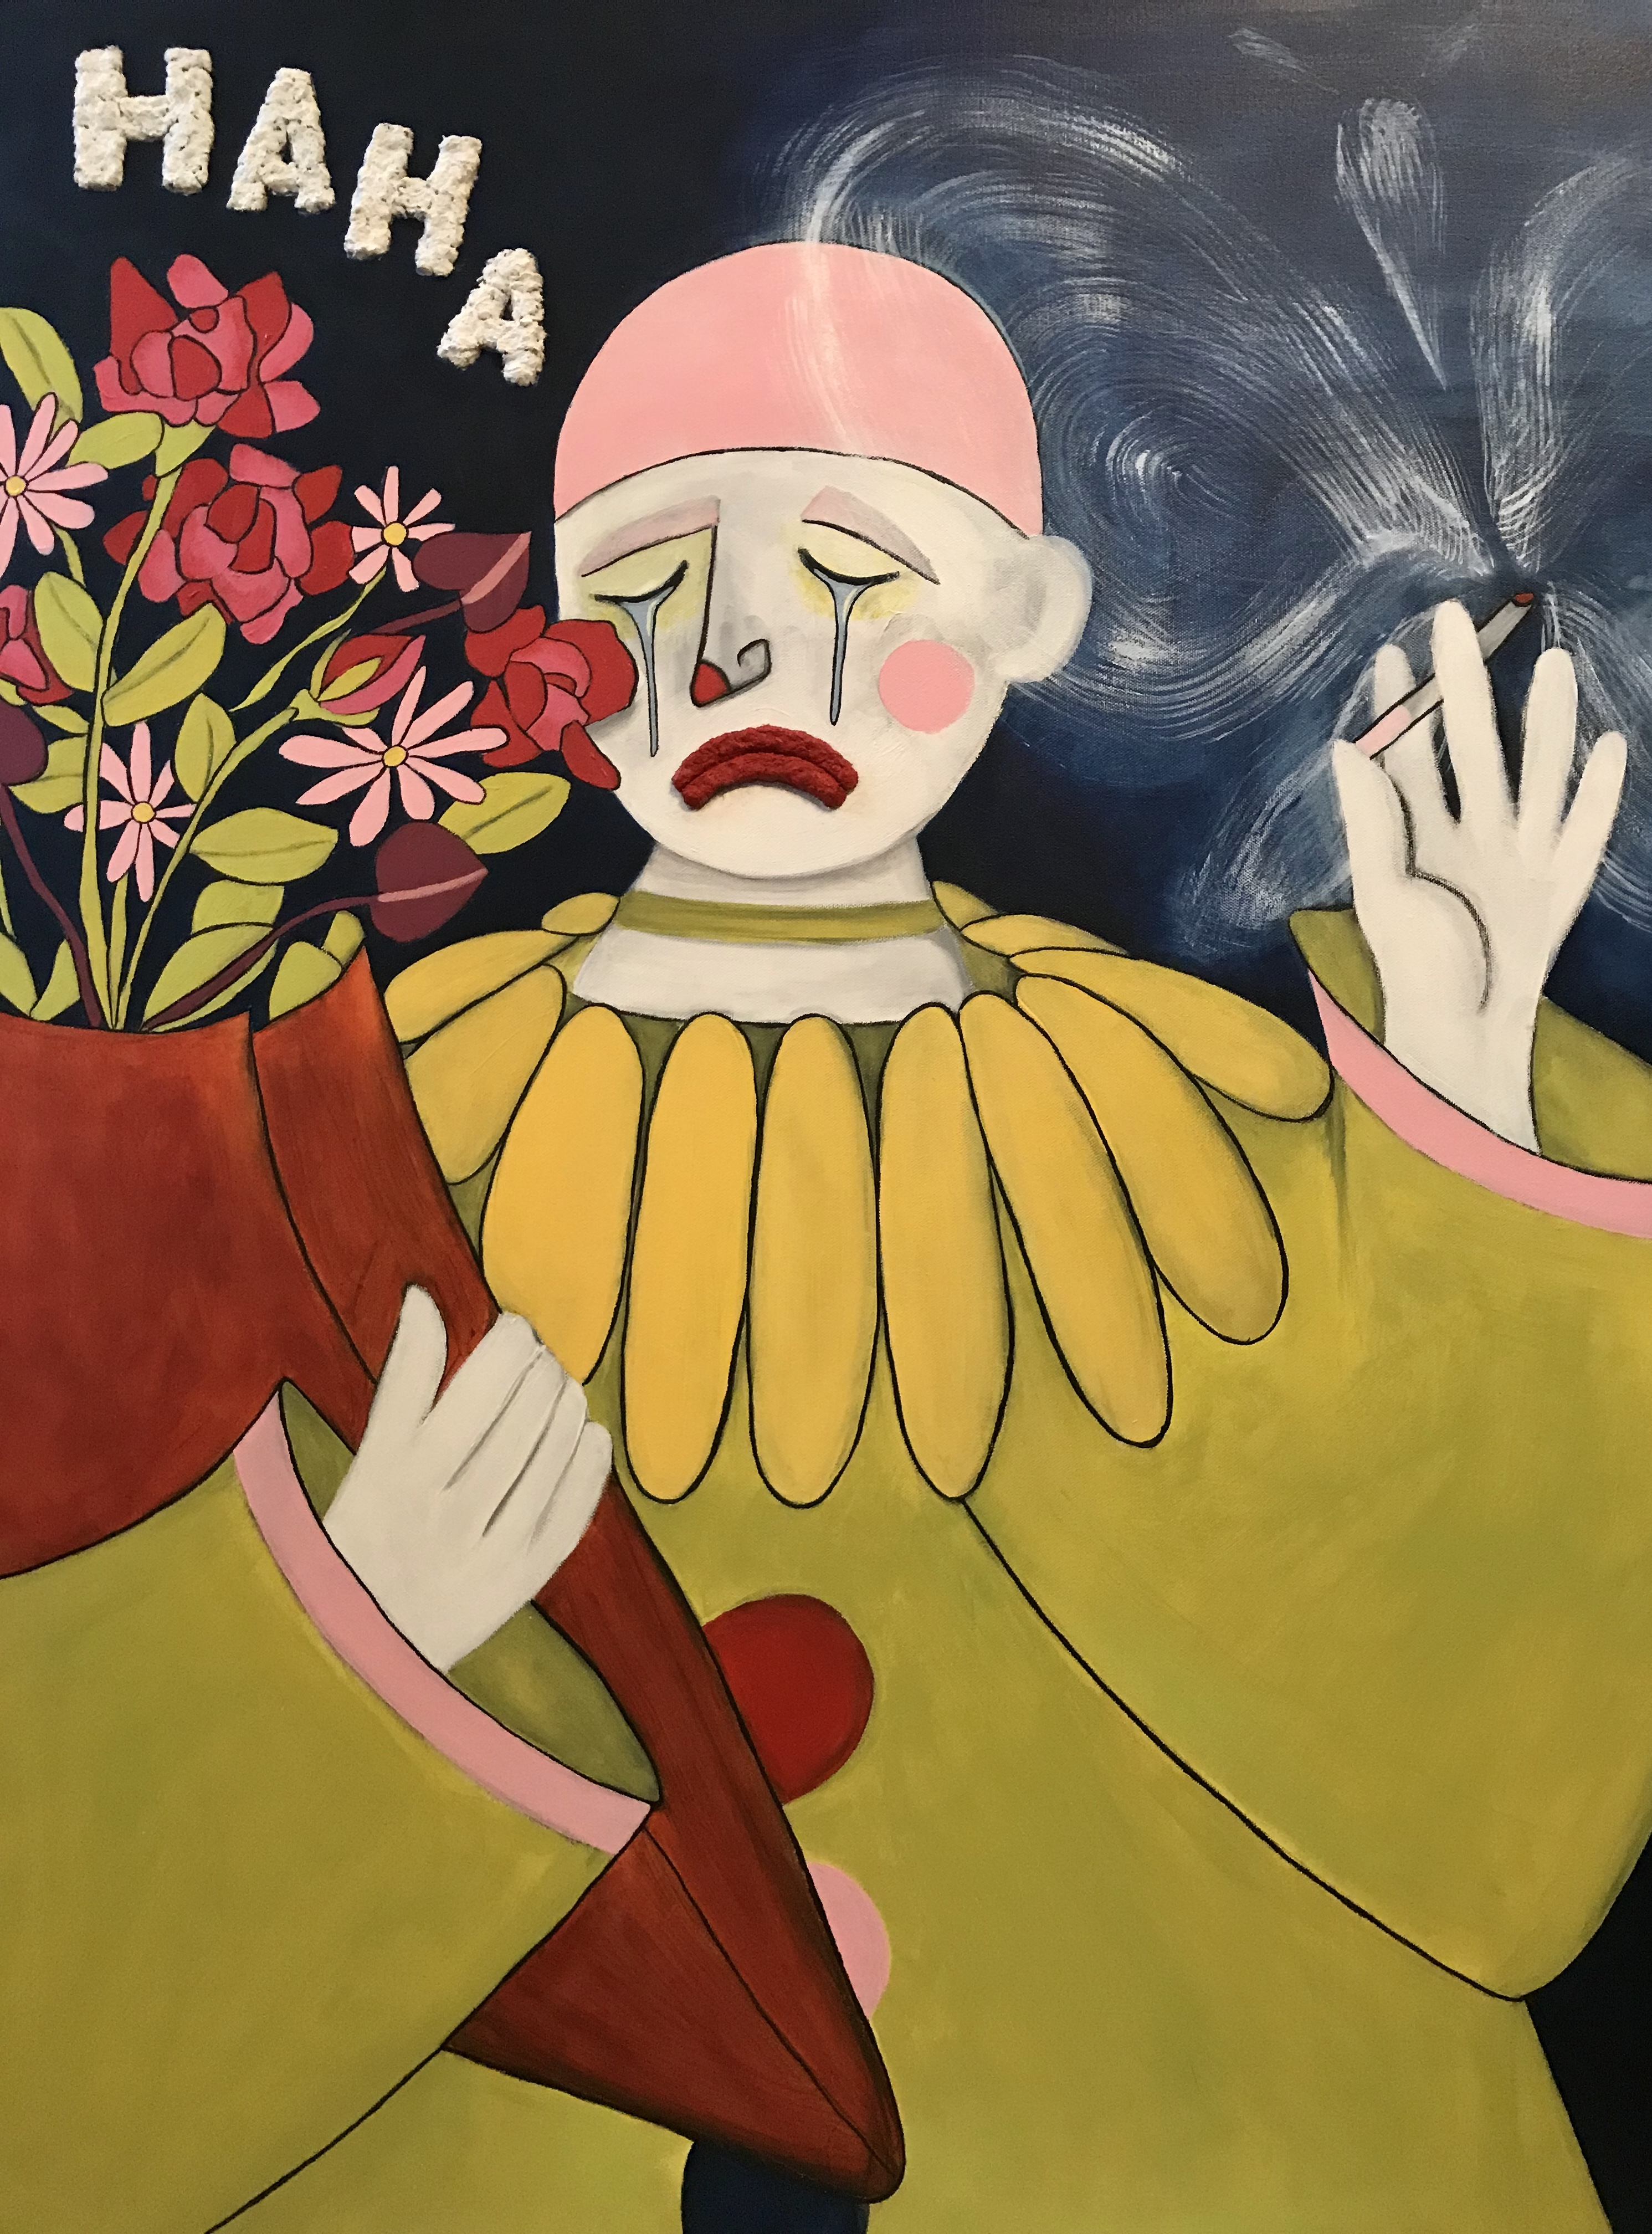 Painting of a sad clown holding a bouquet of flowers